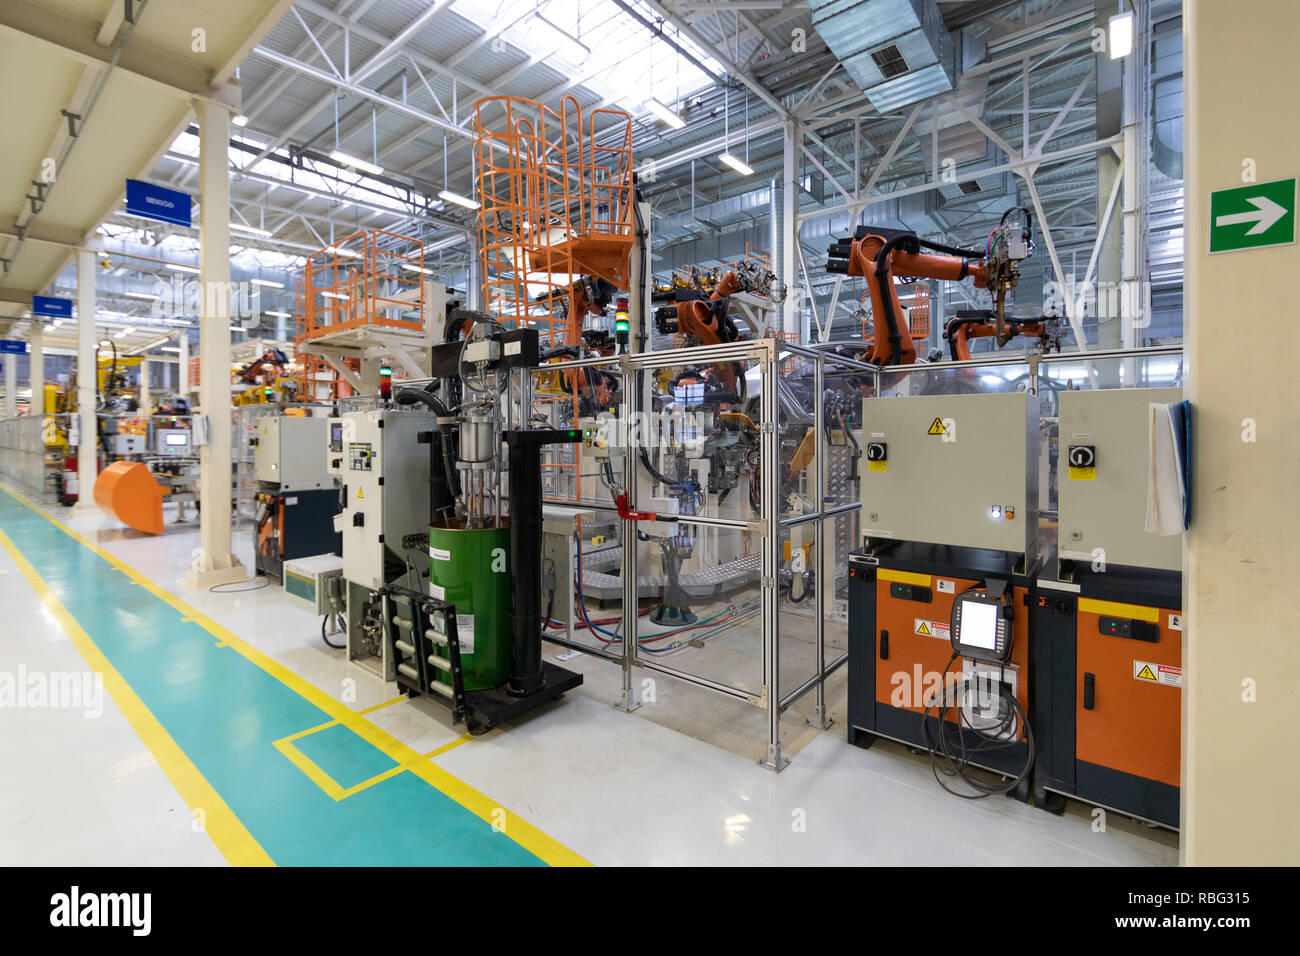 Car manufacturing plant. Automotive shop. The Assembly line for manufacturing cars. - Stock Image